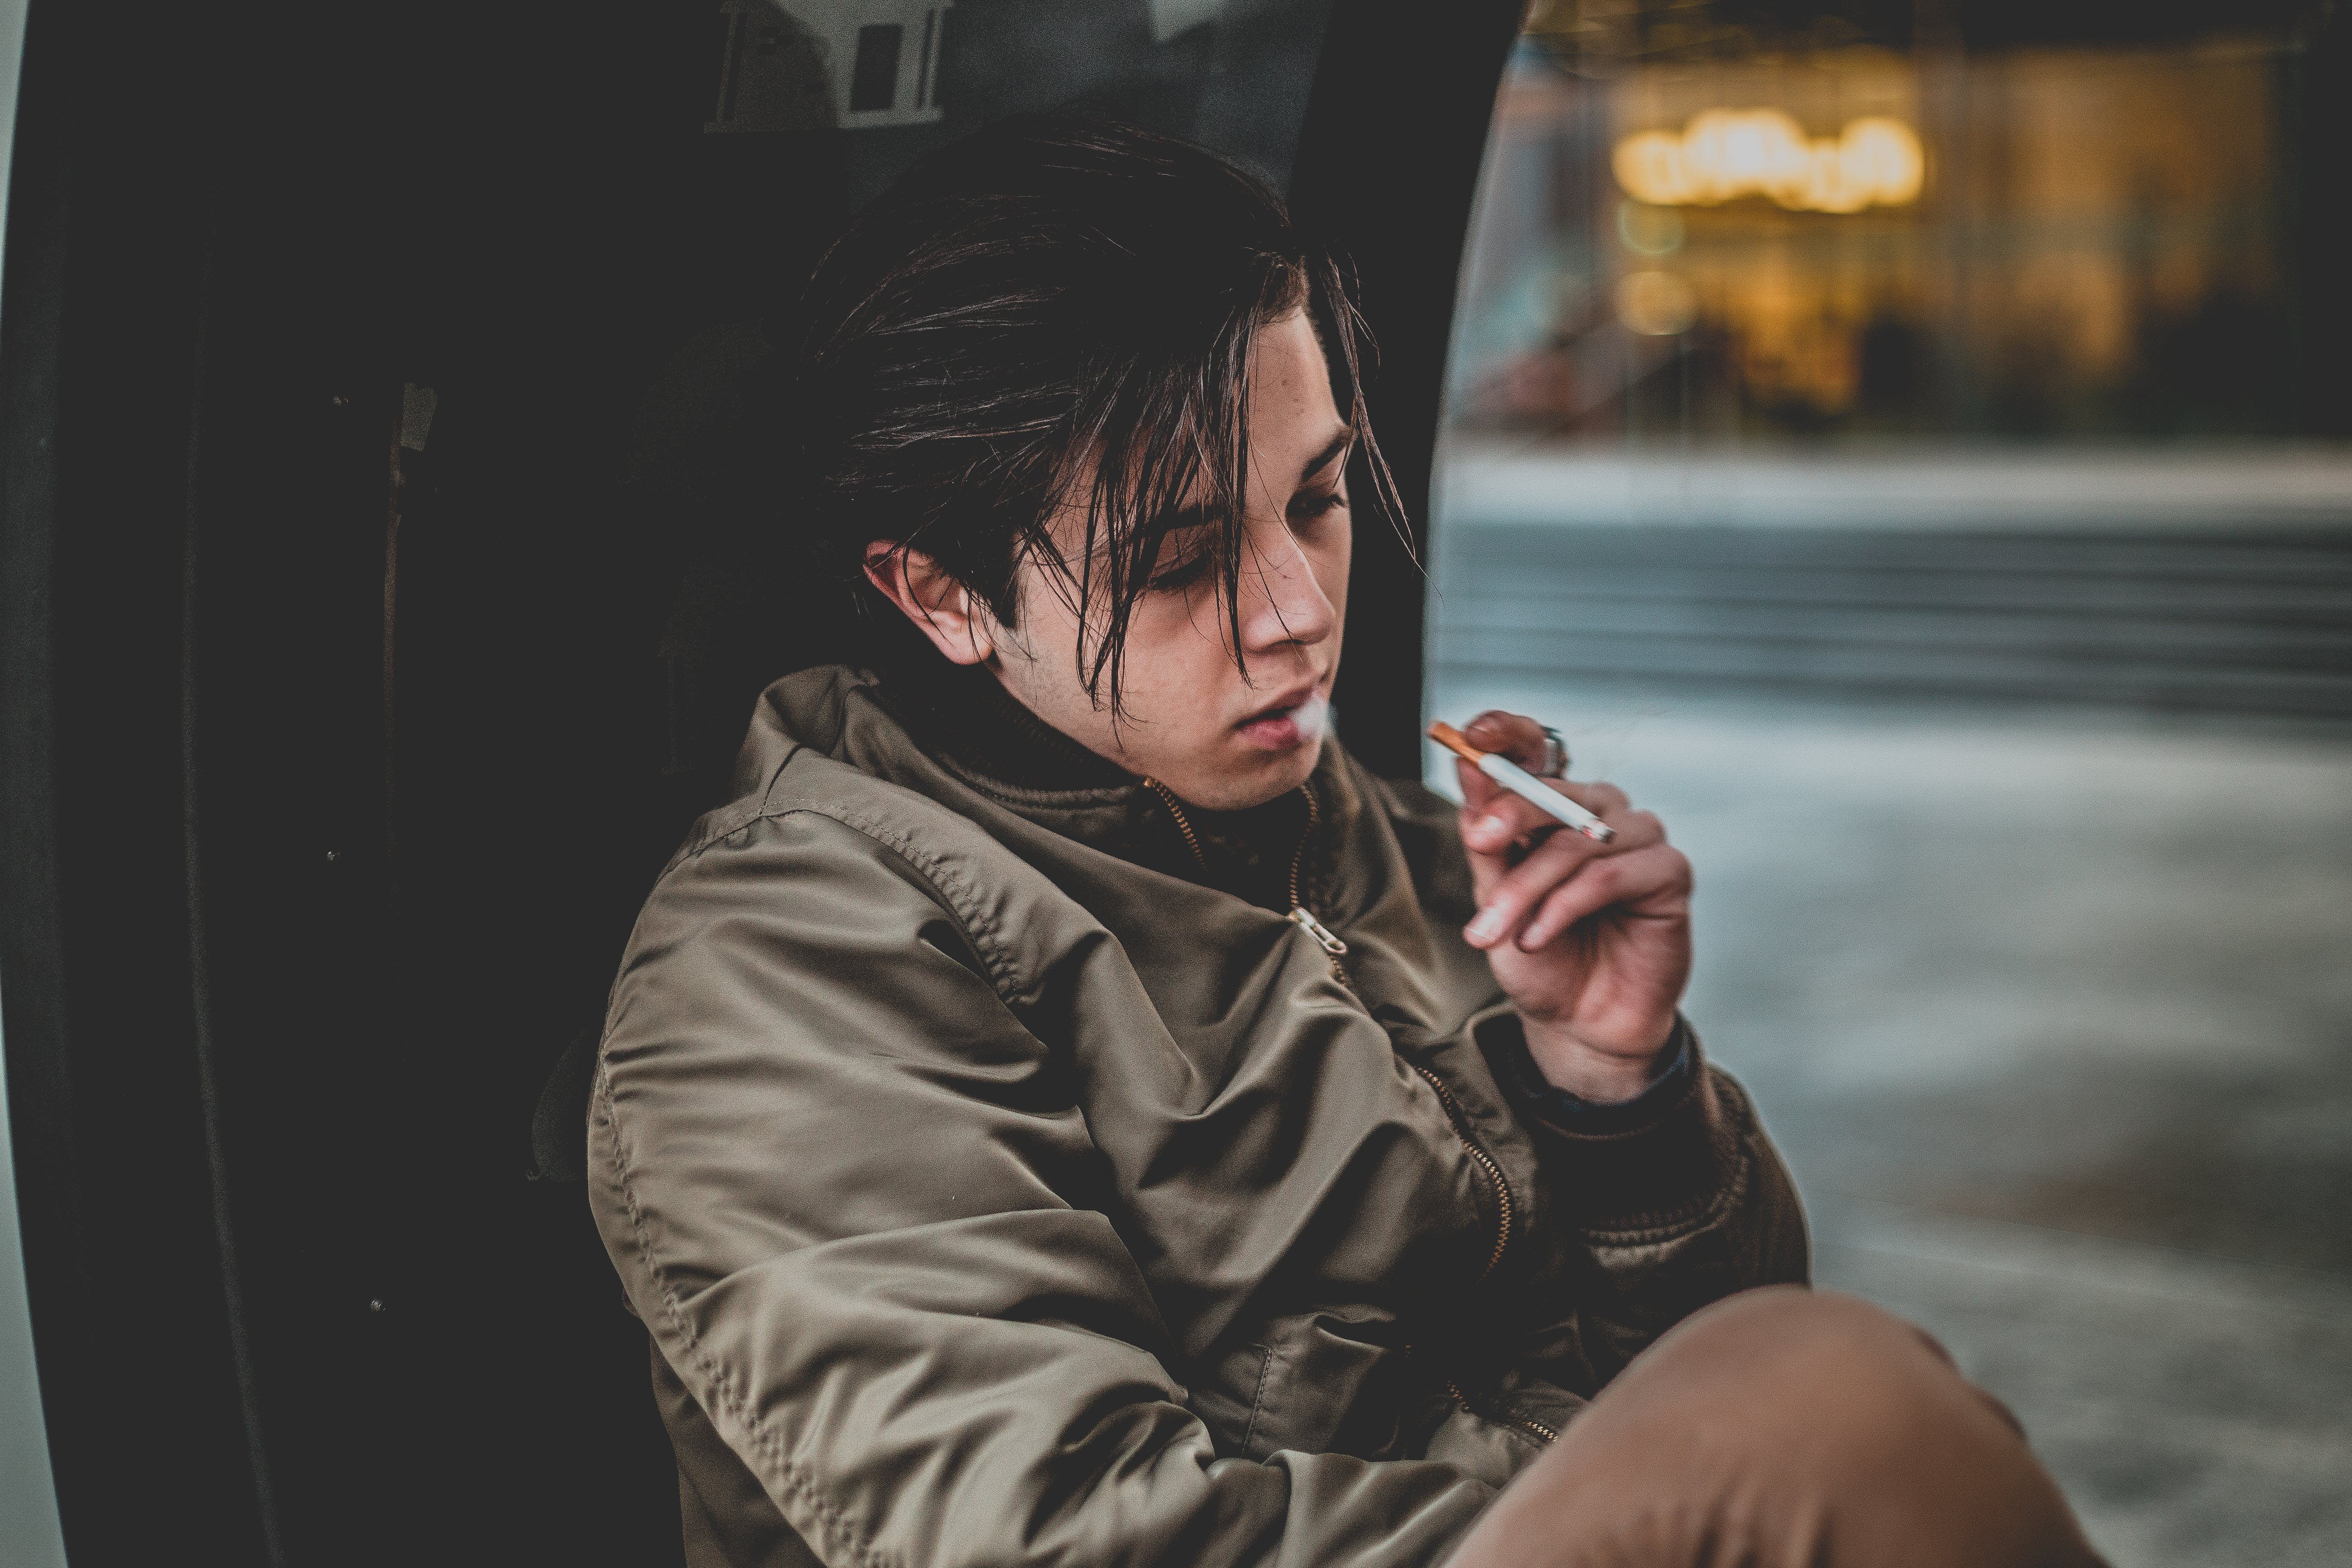 Man Wearing Gray Jacket Holding Cigarette